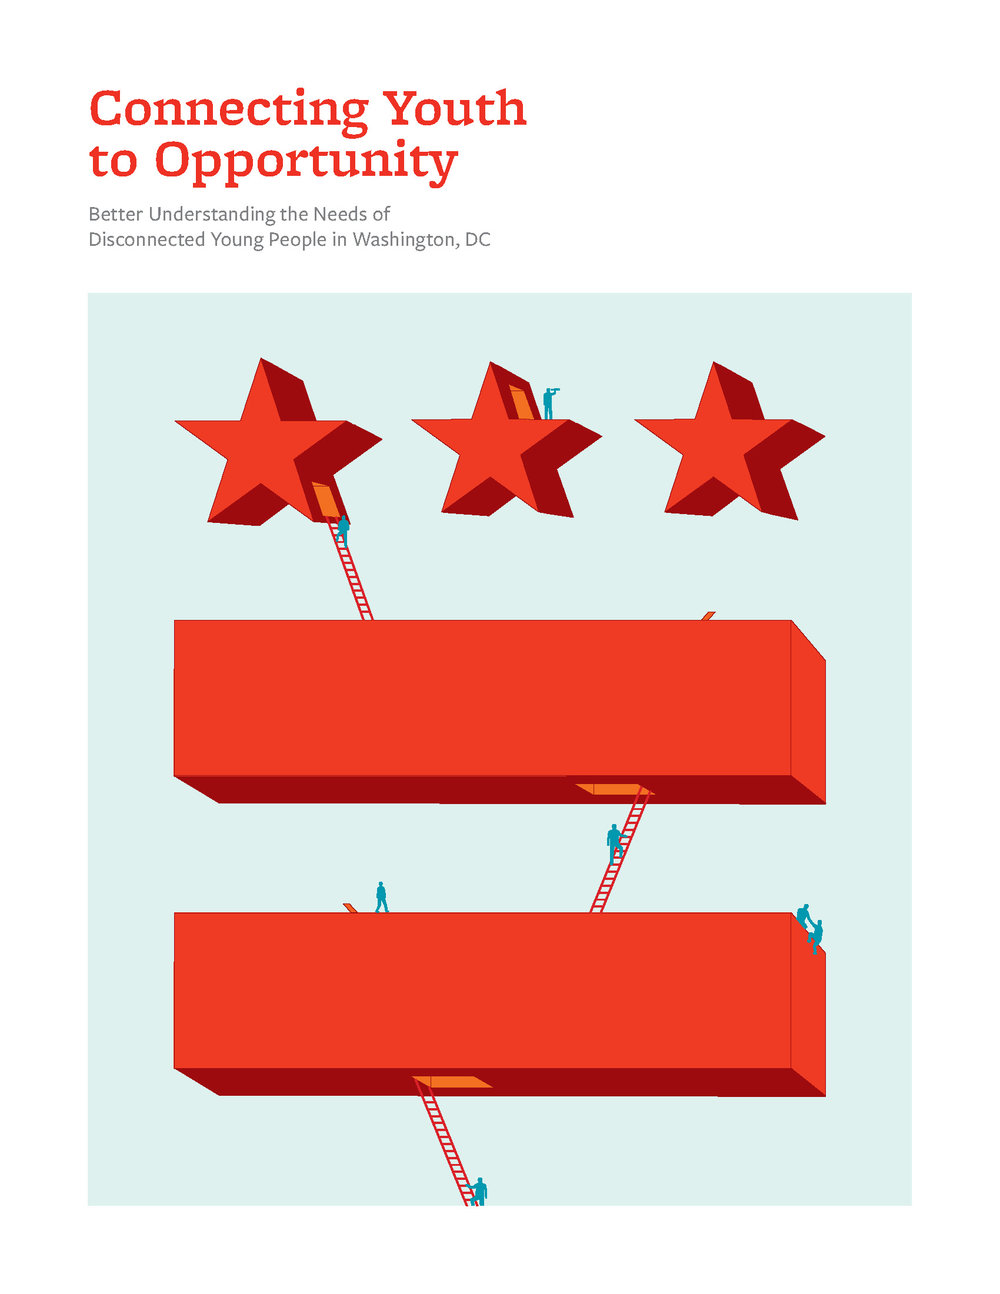 Connecting-Youth-to-Opportunity_Final-Exec-Summary_Page_1.jpg